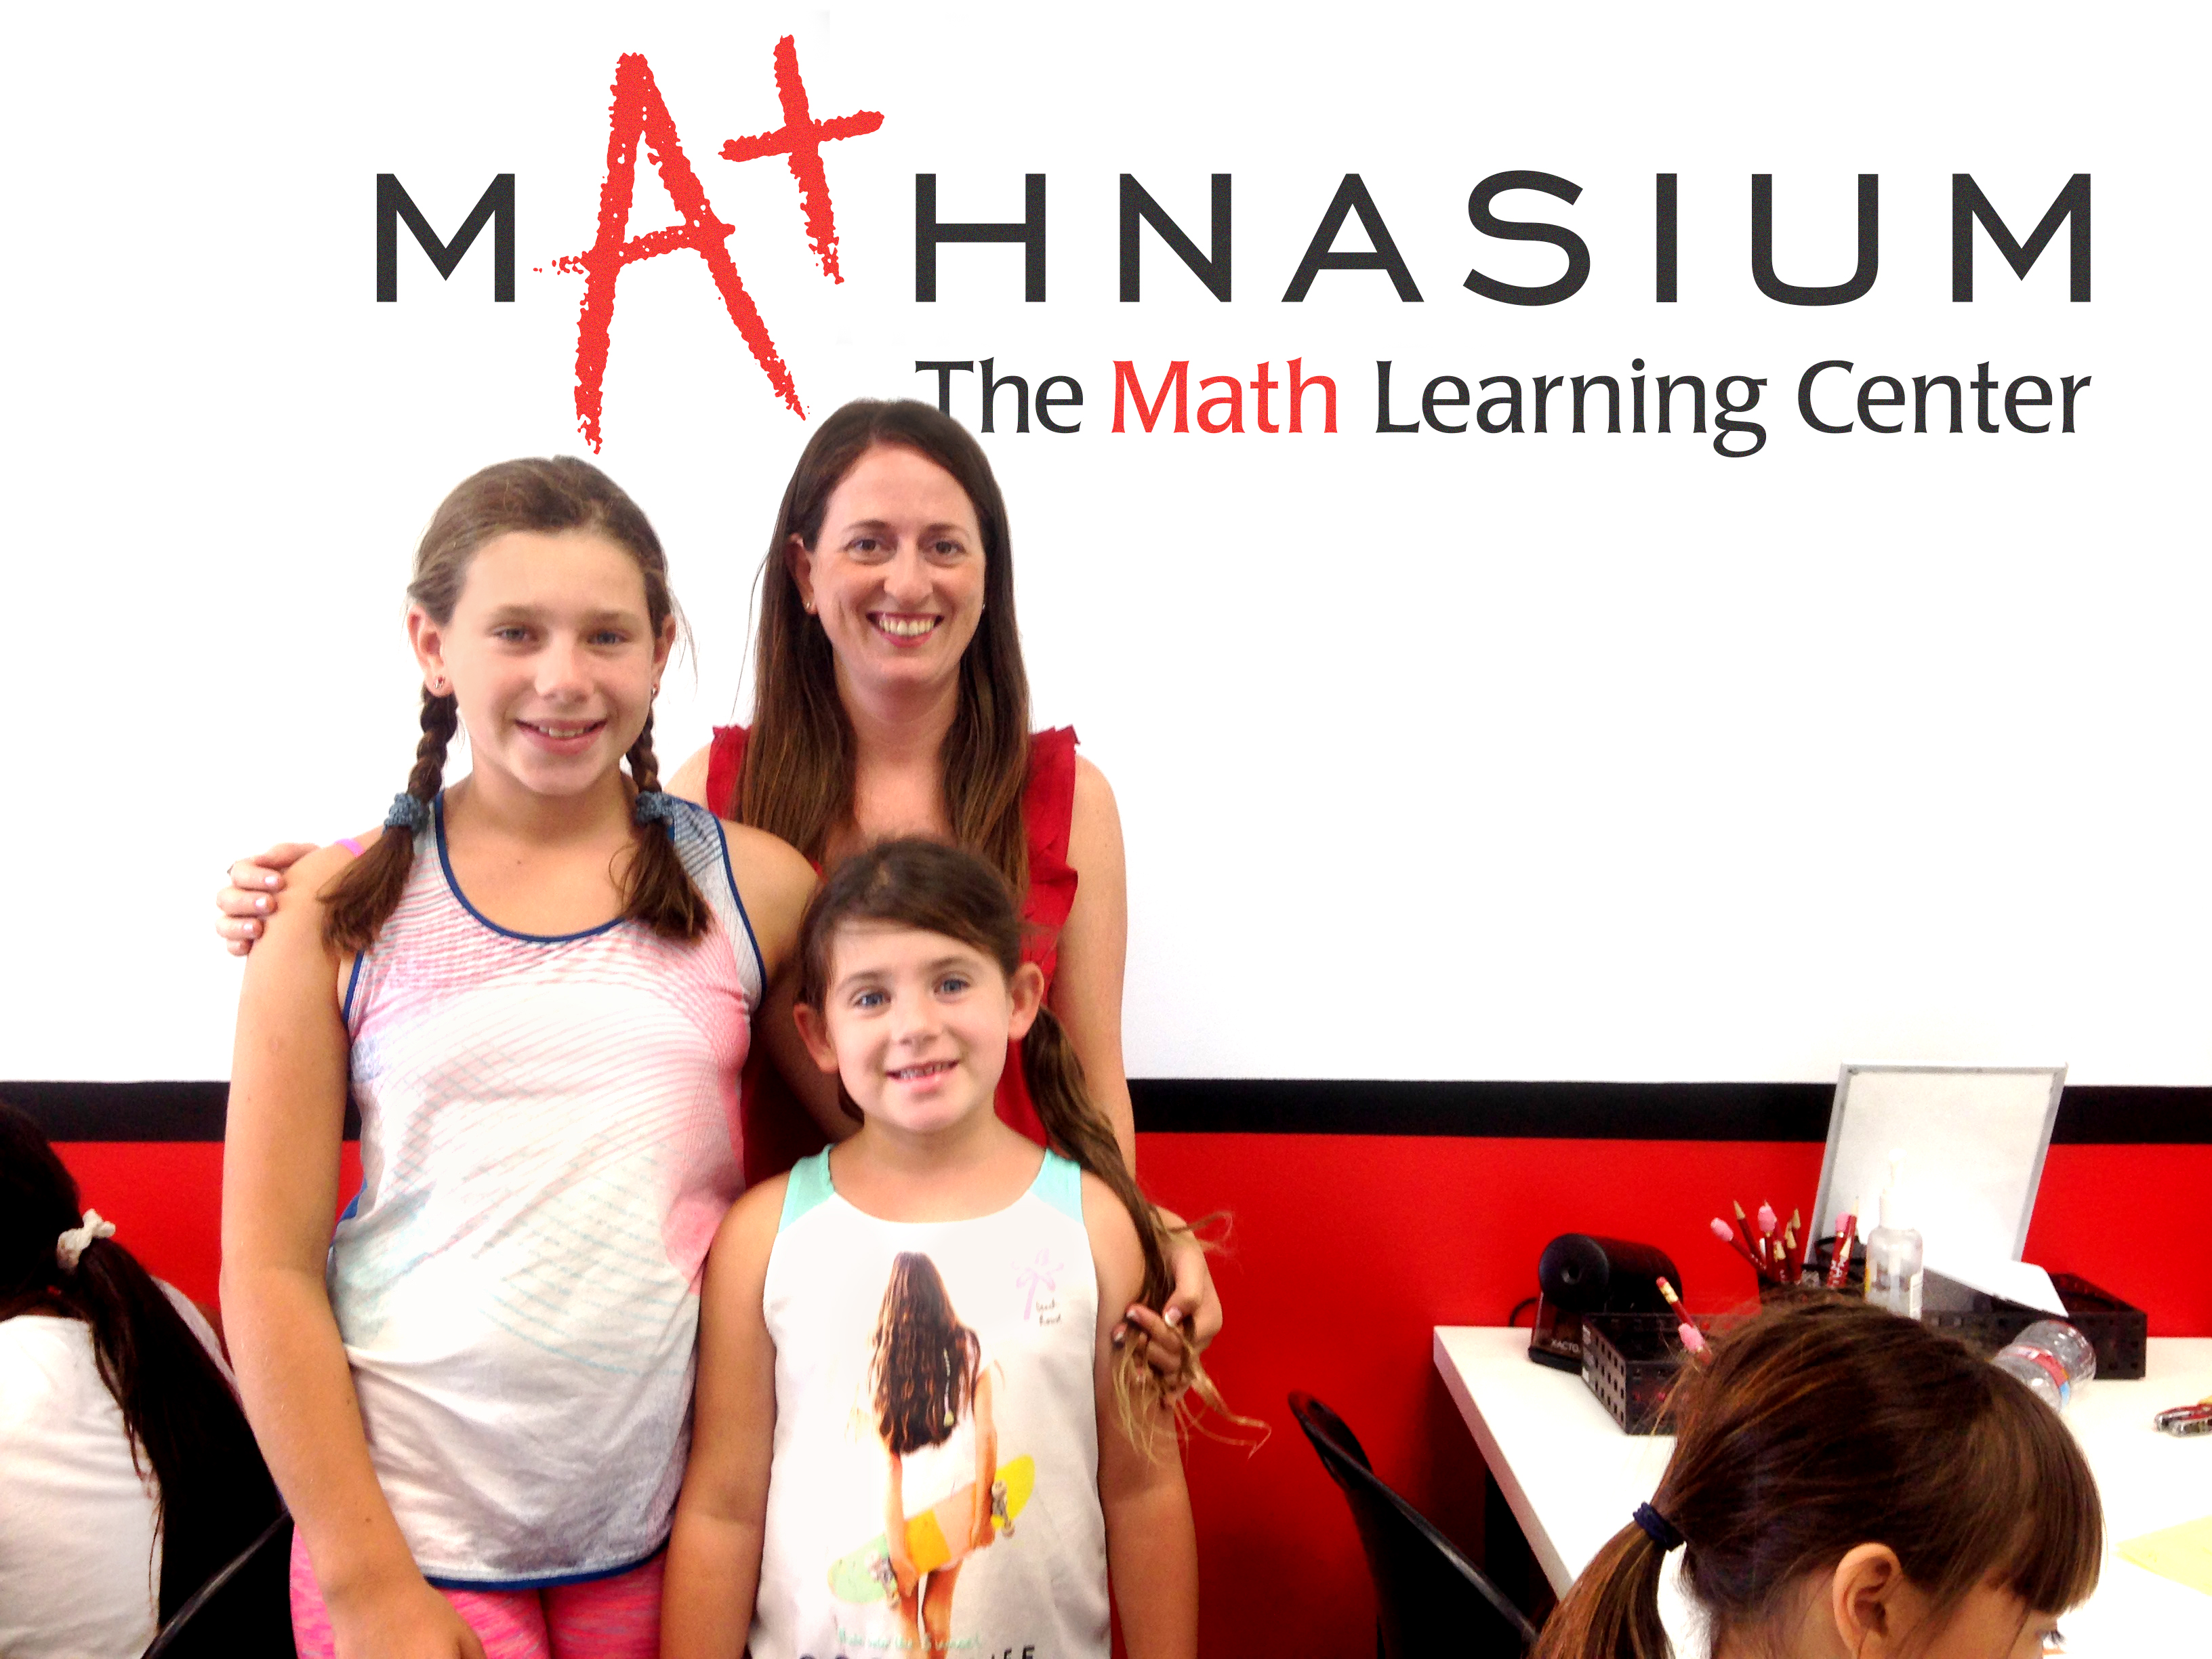 Mathnasium-Photo-09222016